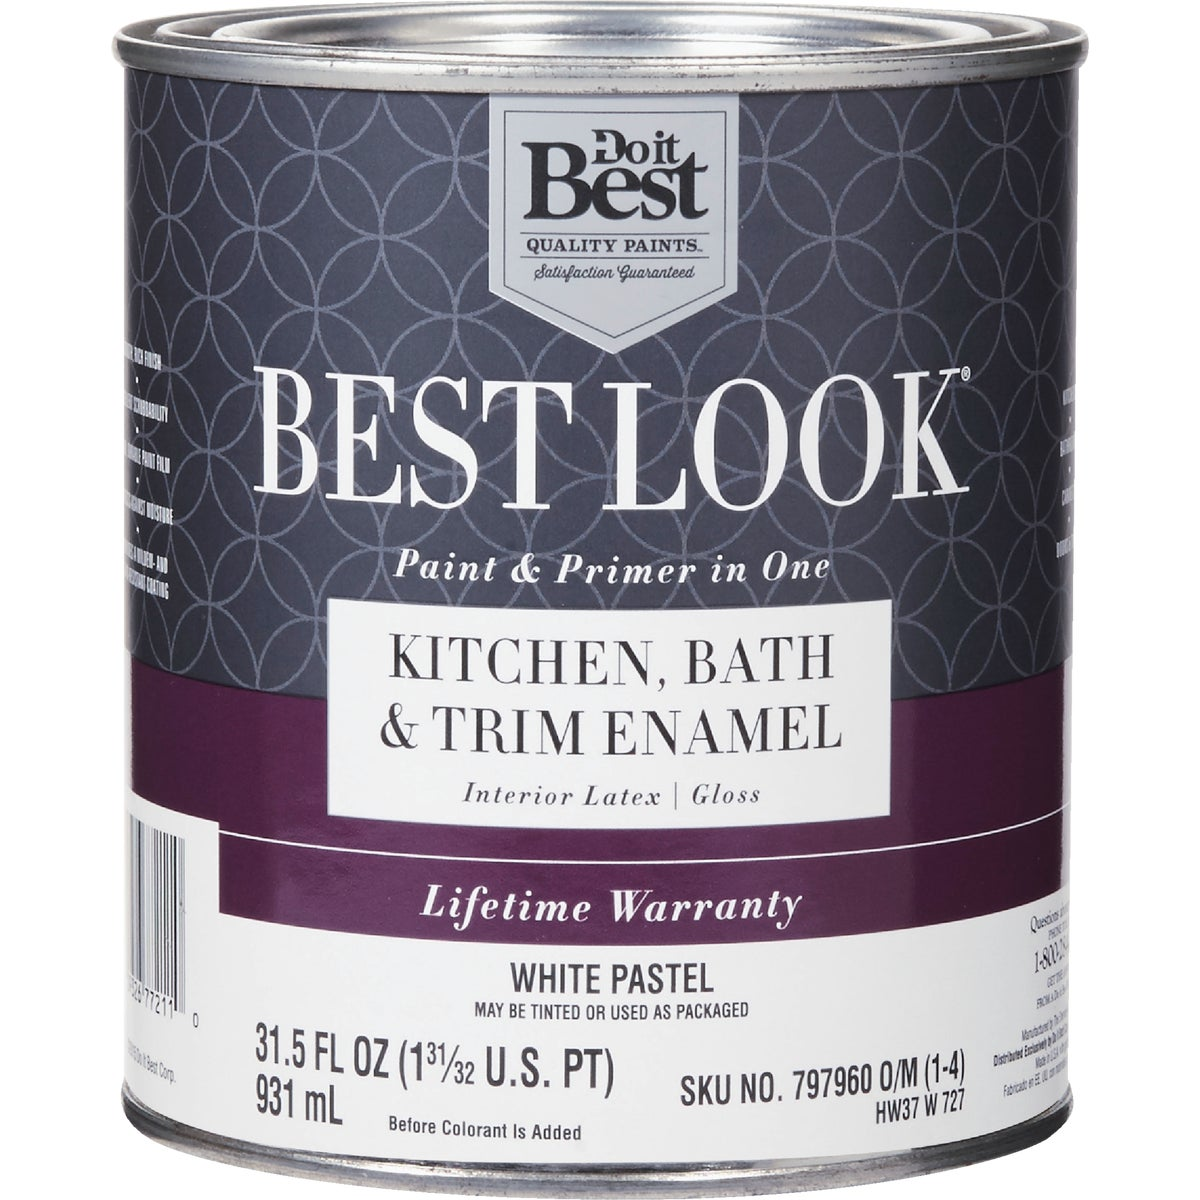 GLS WHT/PASTL BATH PAINT - HW37W0727-14 by Do it Best